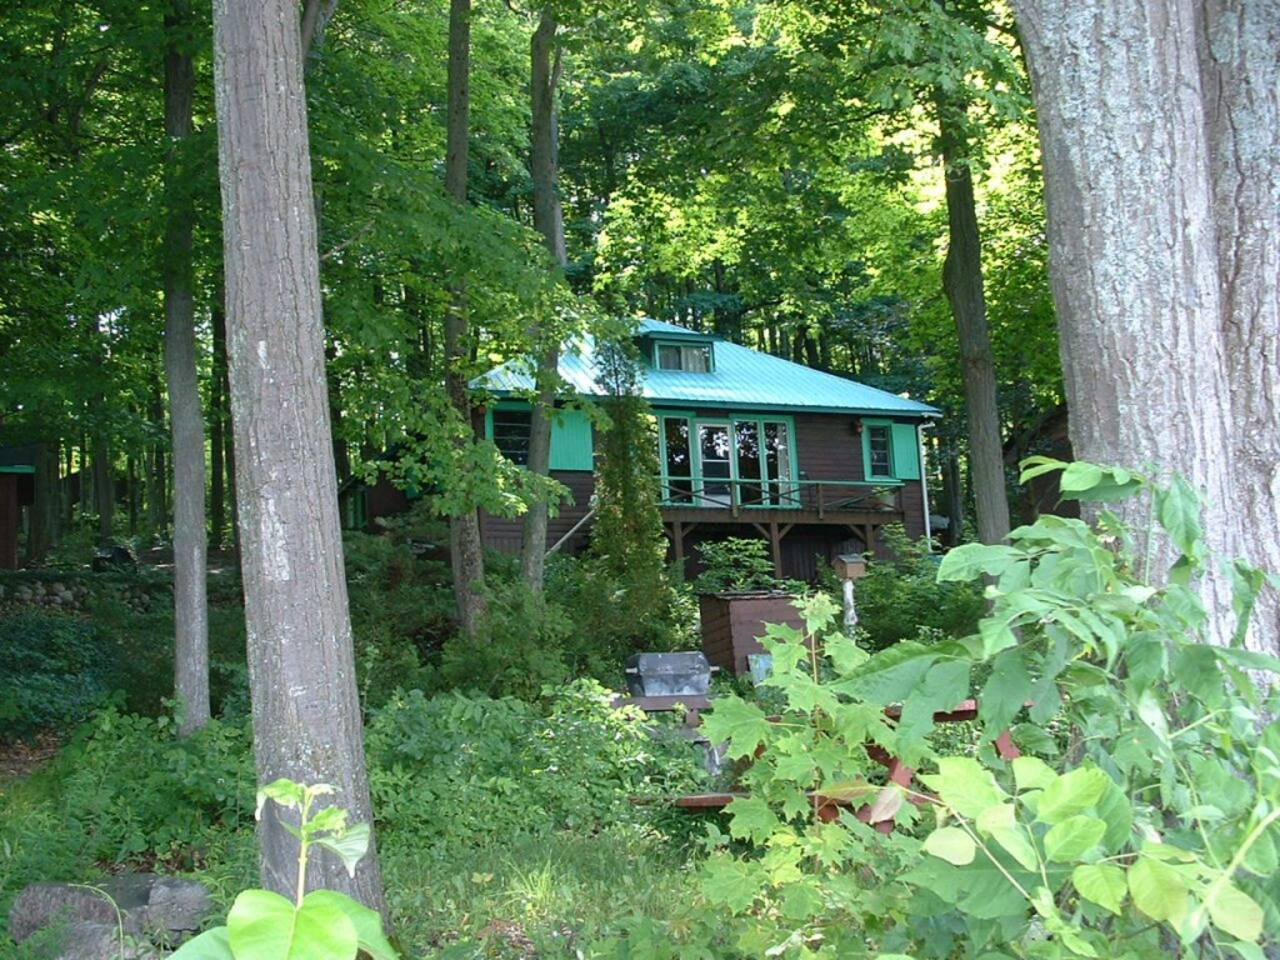 The Forest Cottage